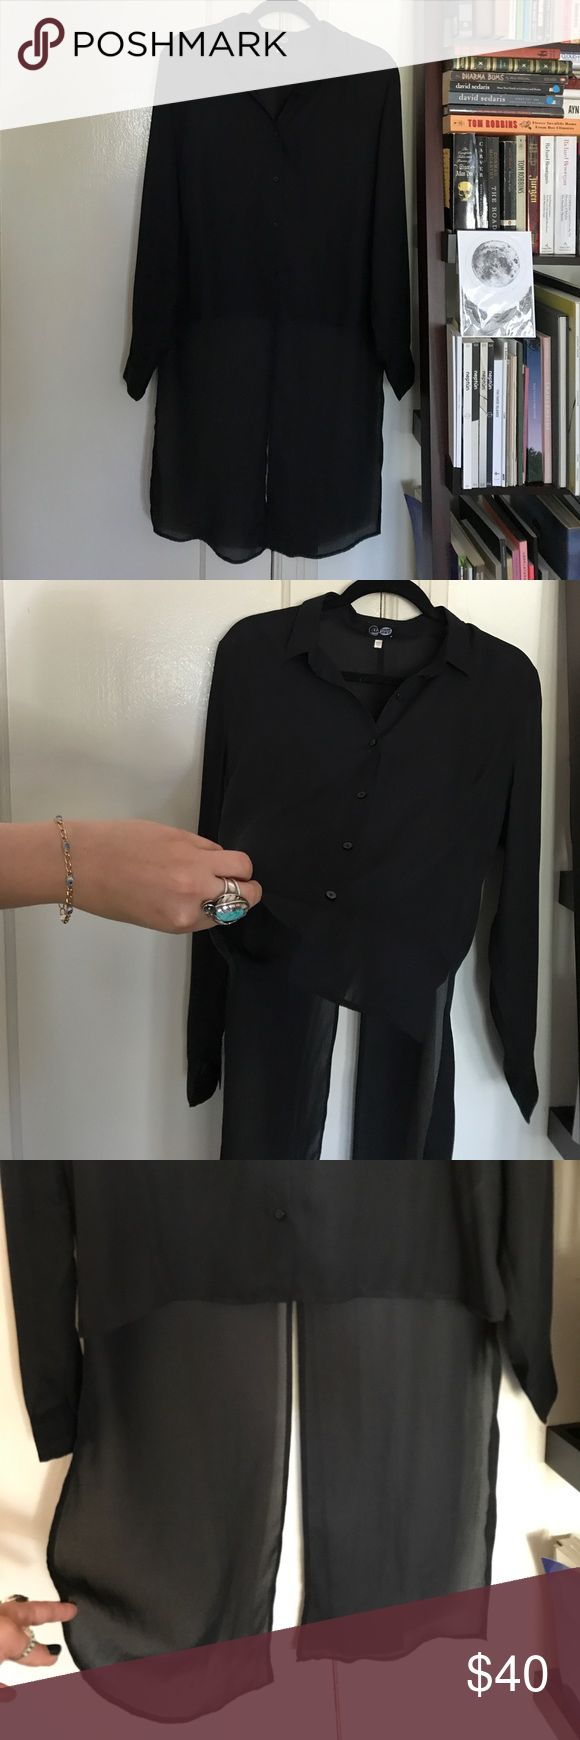 Unique Black button up Top This is truly a unique piece. This is a sheer black long sleeve button up top. The front is cropped shorter than the back- perfect for tucking in or wearing as is. The back is longer and has a high slit- looks awesome when you walk ;) This pairs really well with a pair of denim shorts or some high waisted denim. Brand is Cheap Monday but purchased at Urban Outfitters years back. Urban Outfitters Tops Button Down Shirts